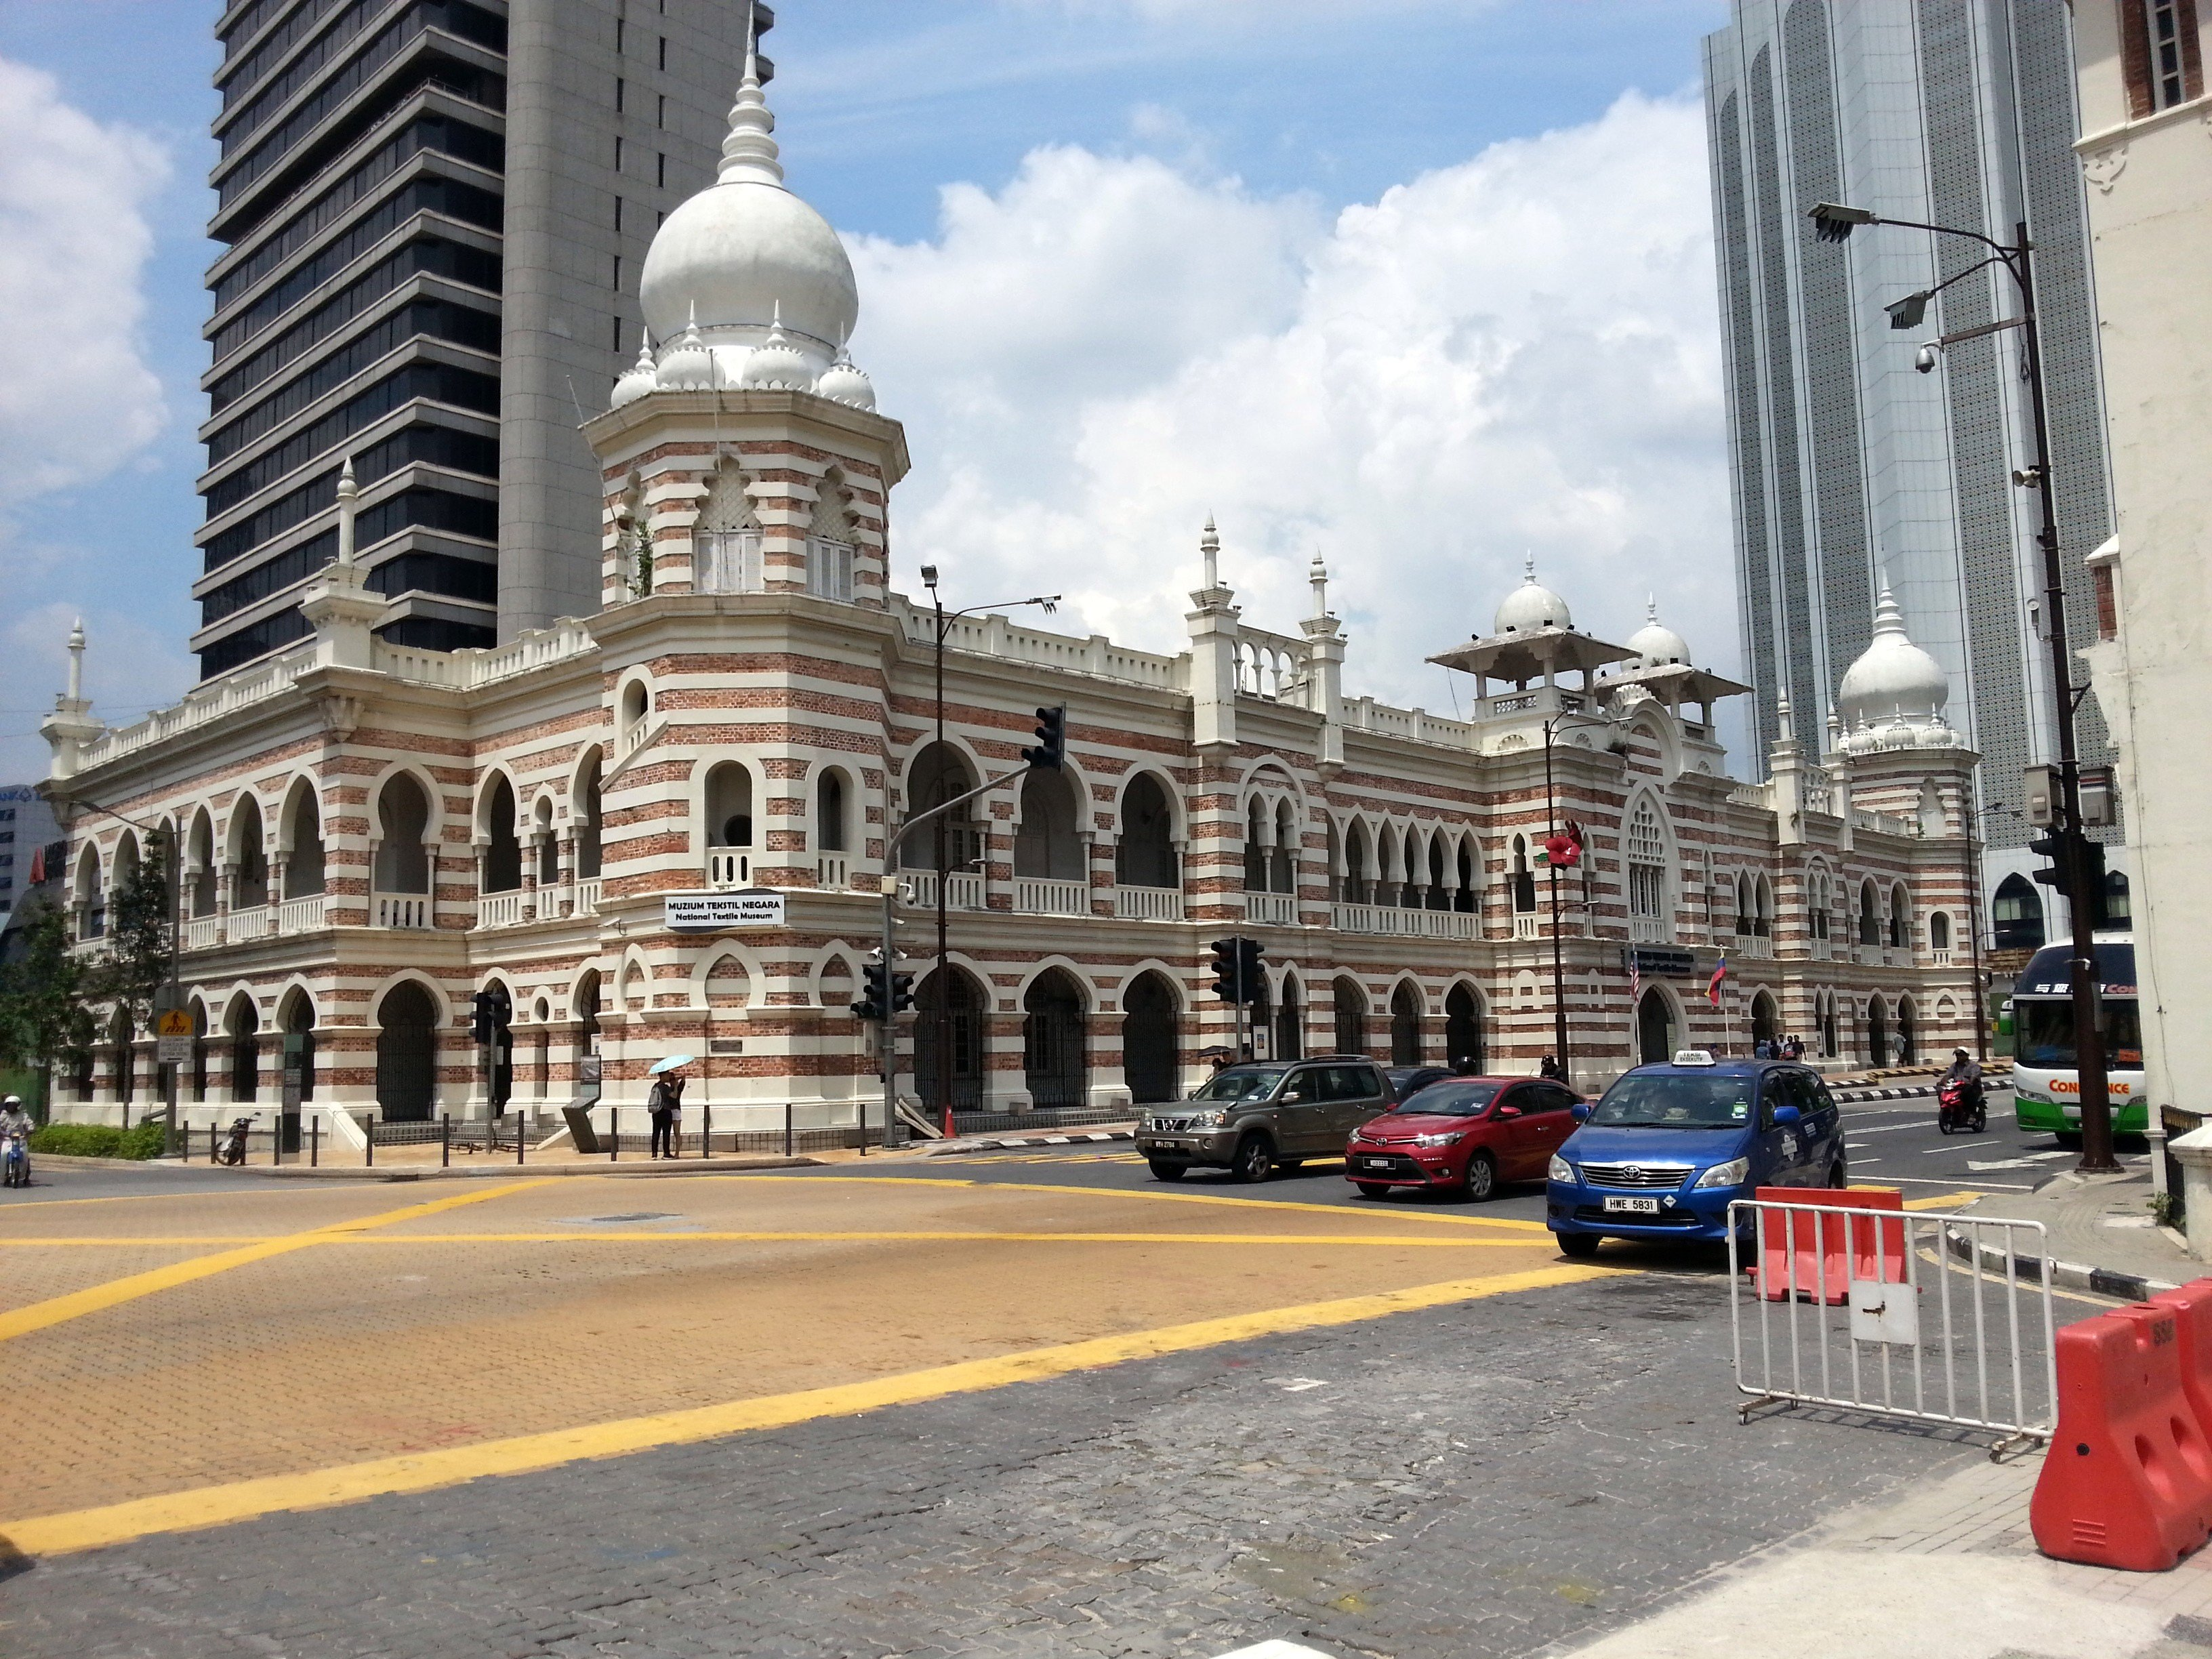 The National Textile Museum in Kuala Lumpur